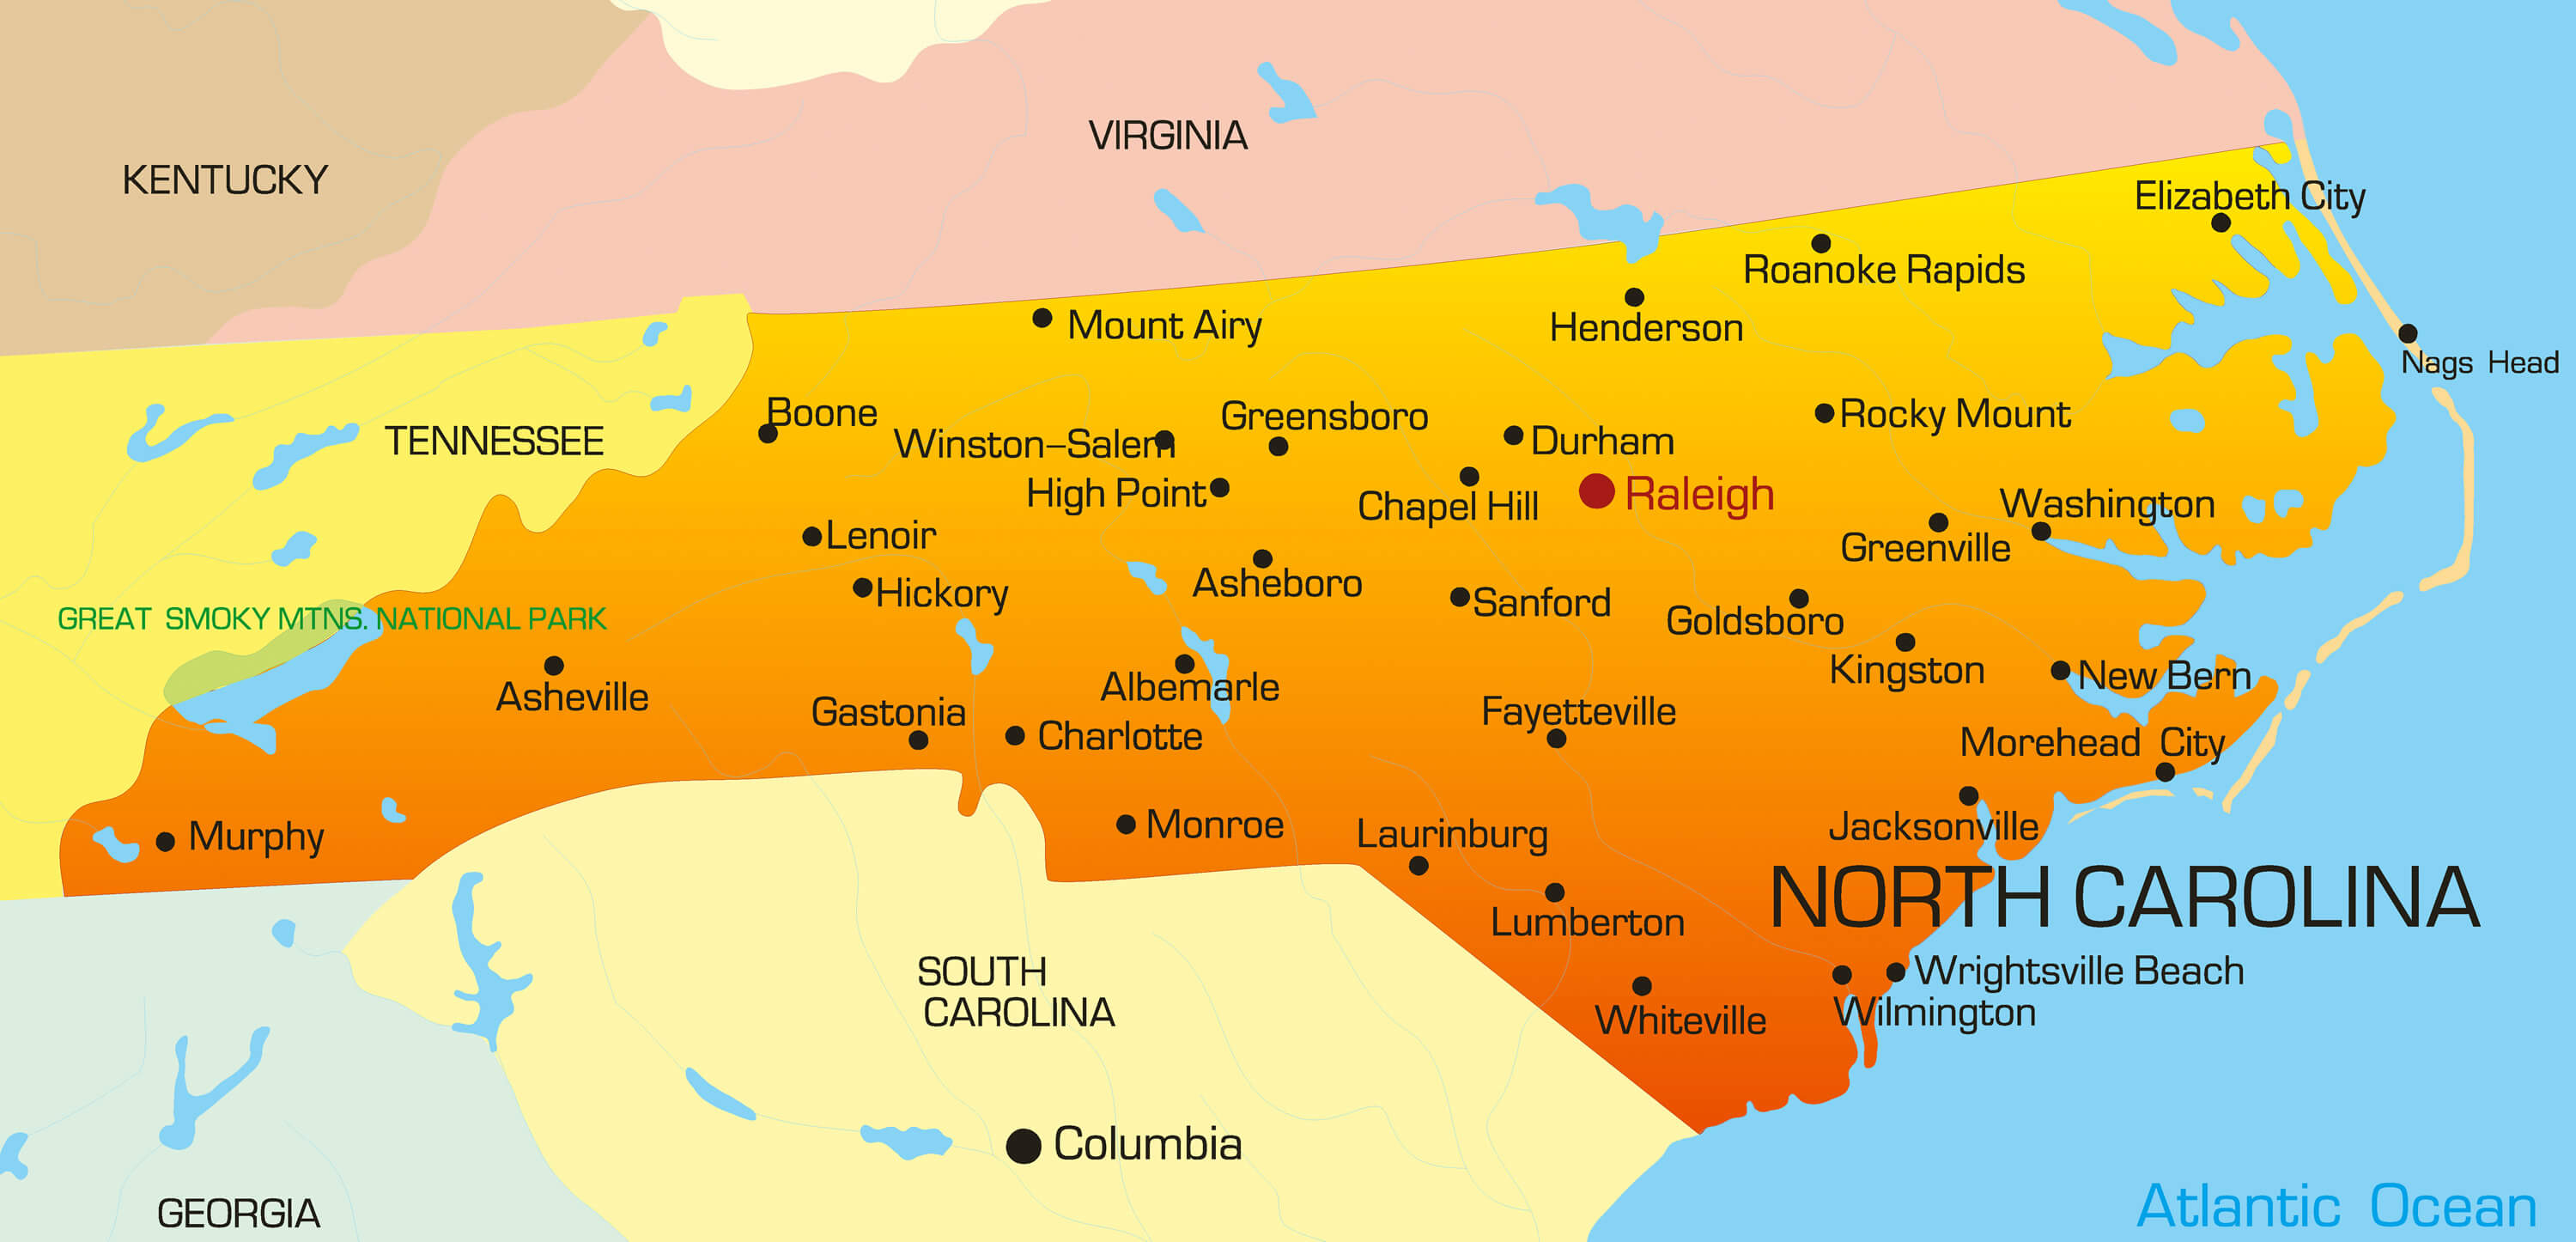 North Carolina Map - Guide of the World